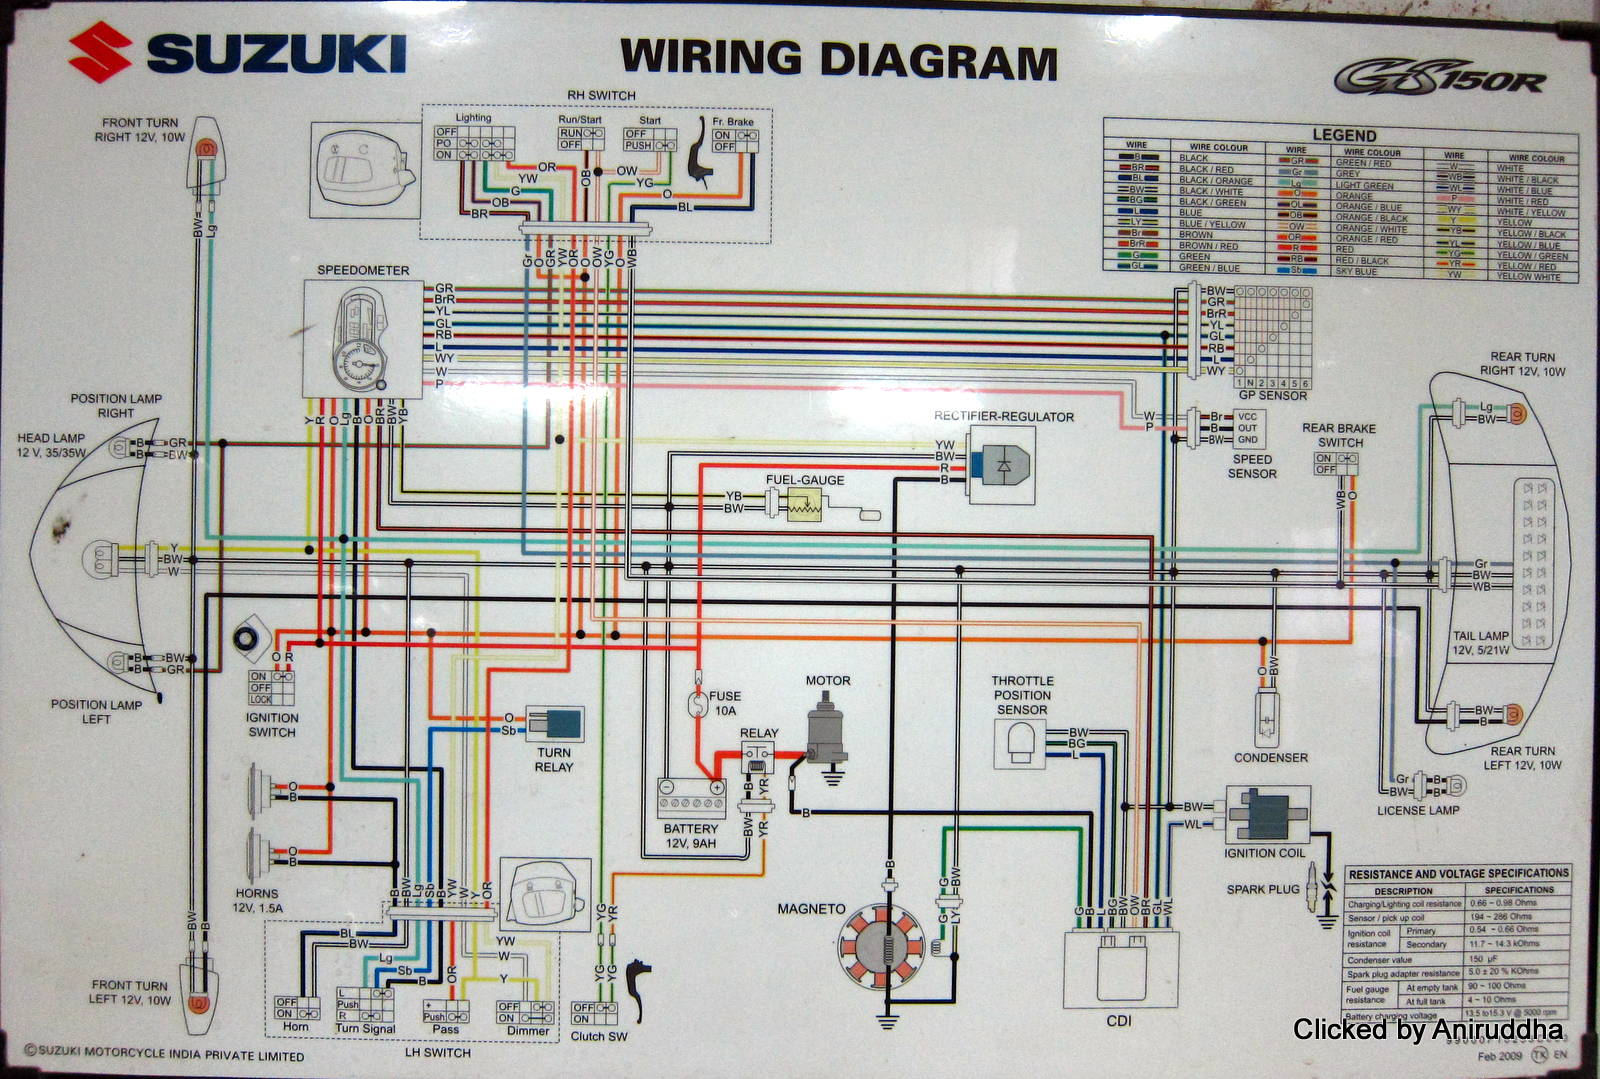 Suzuki Gd 110 Cdi Wiring Diagram from static-resources.imageservice.cloud